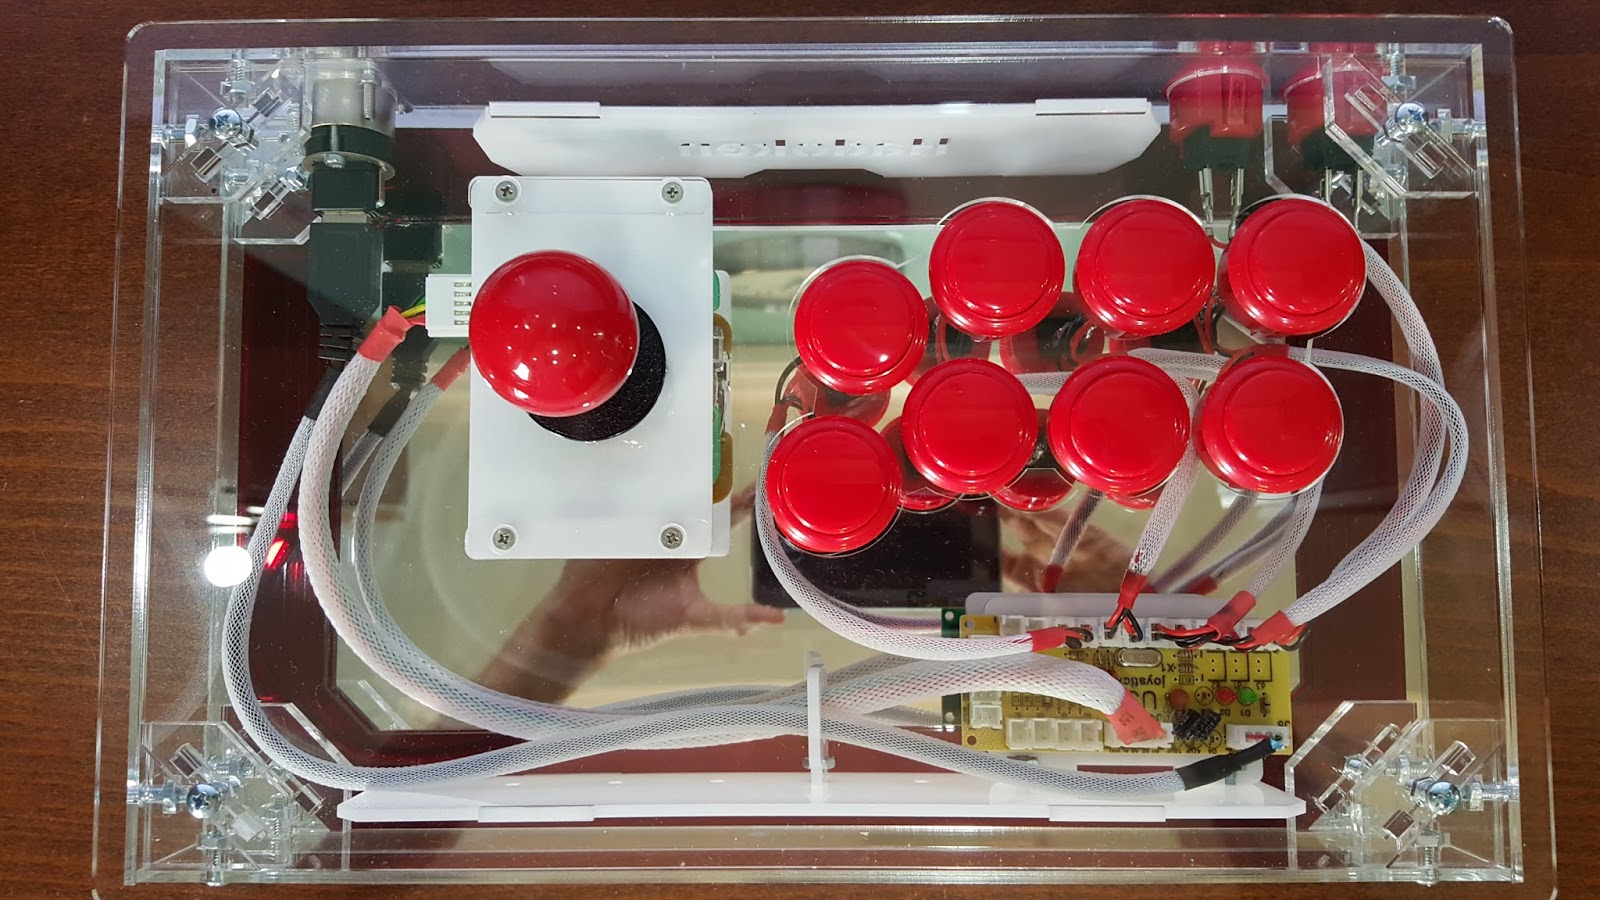 Tech Talk Shoryuken Http Slagcoincom Joystick Pcbdiagrams Ps3diagram3jpg